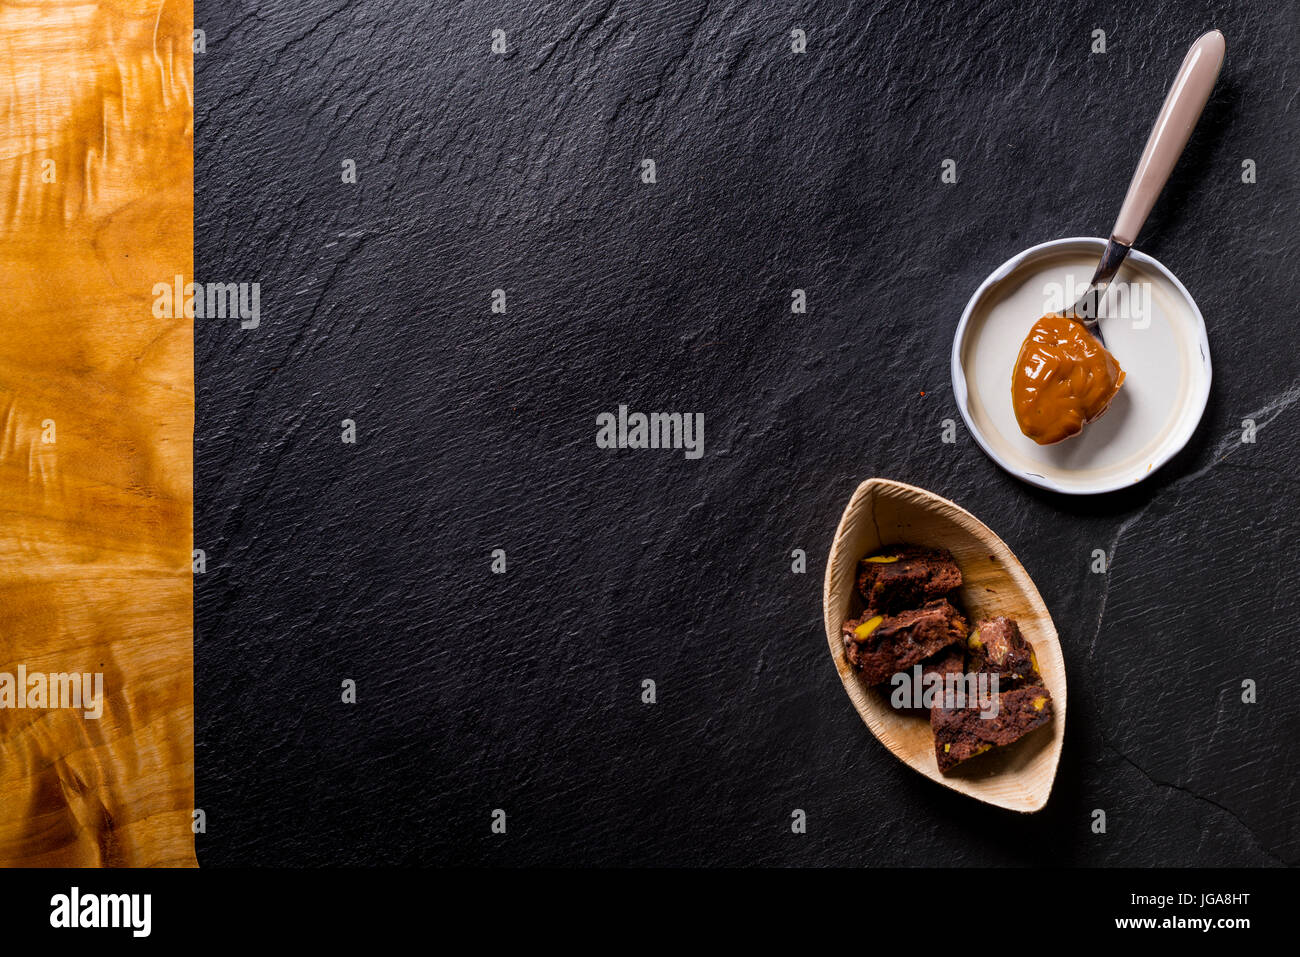 Dulce de leche in a spoon, very sweet creme caramel or praline creme from Argentina,  and some chocolate cookies - Stock Image